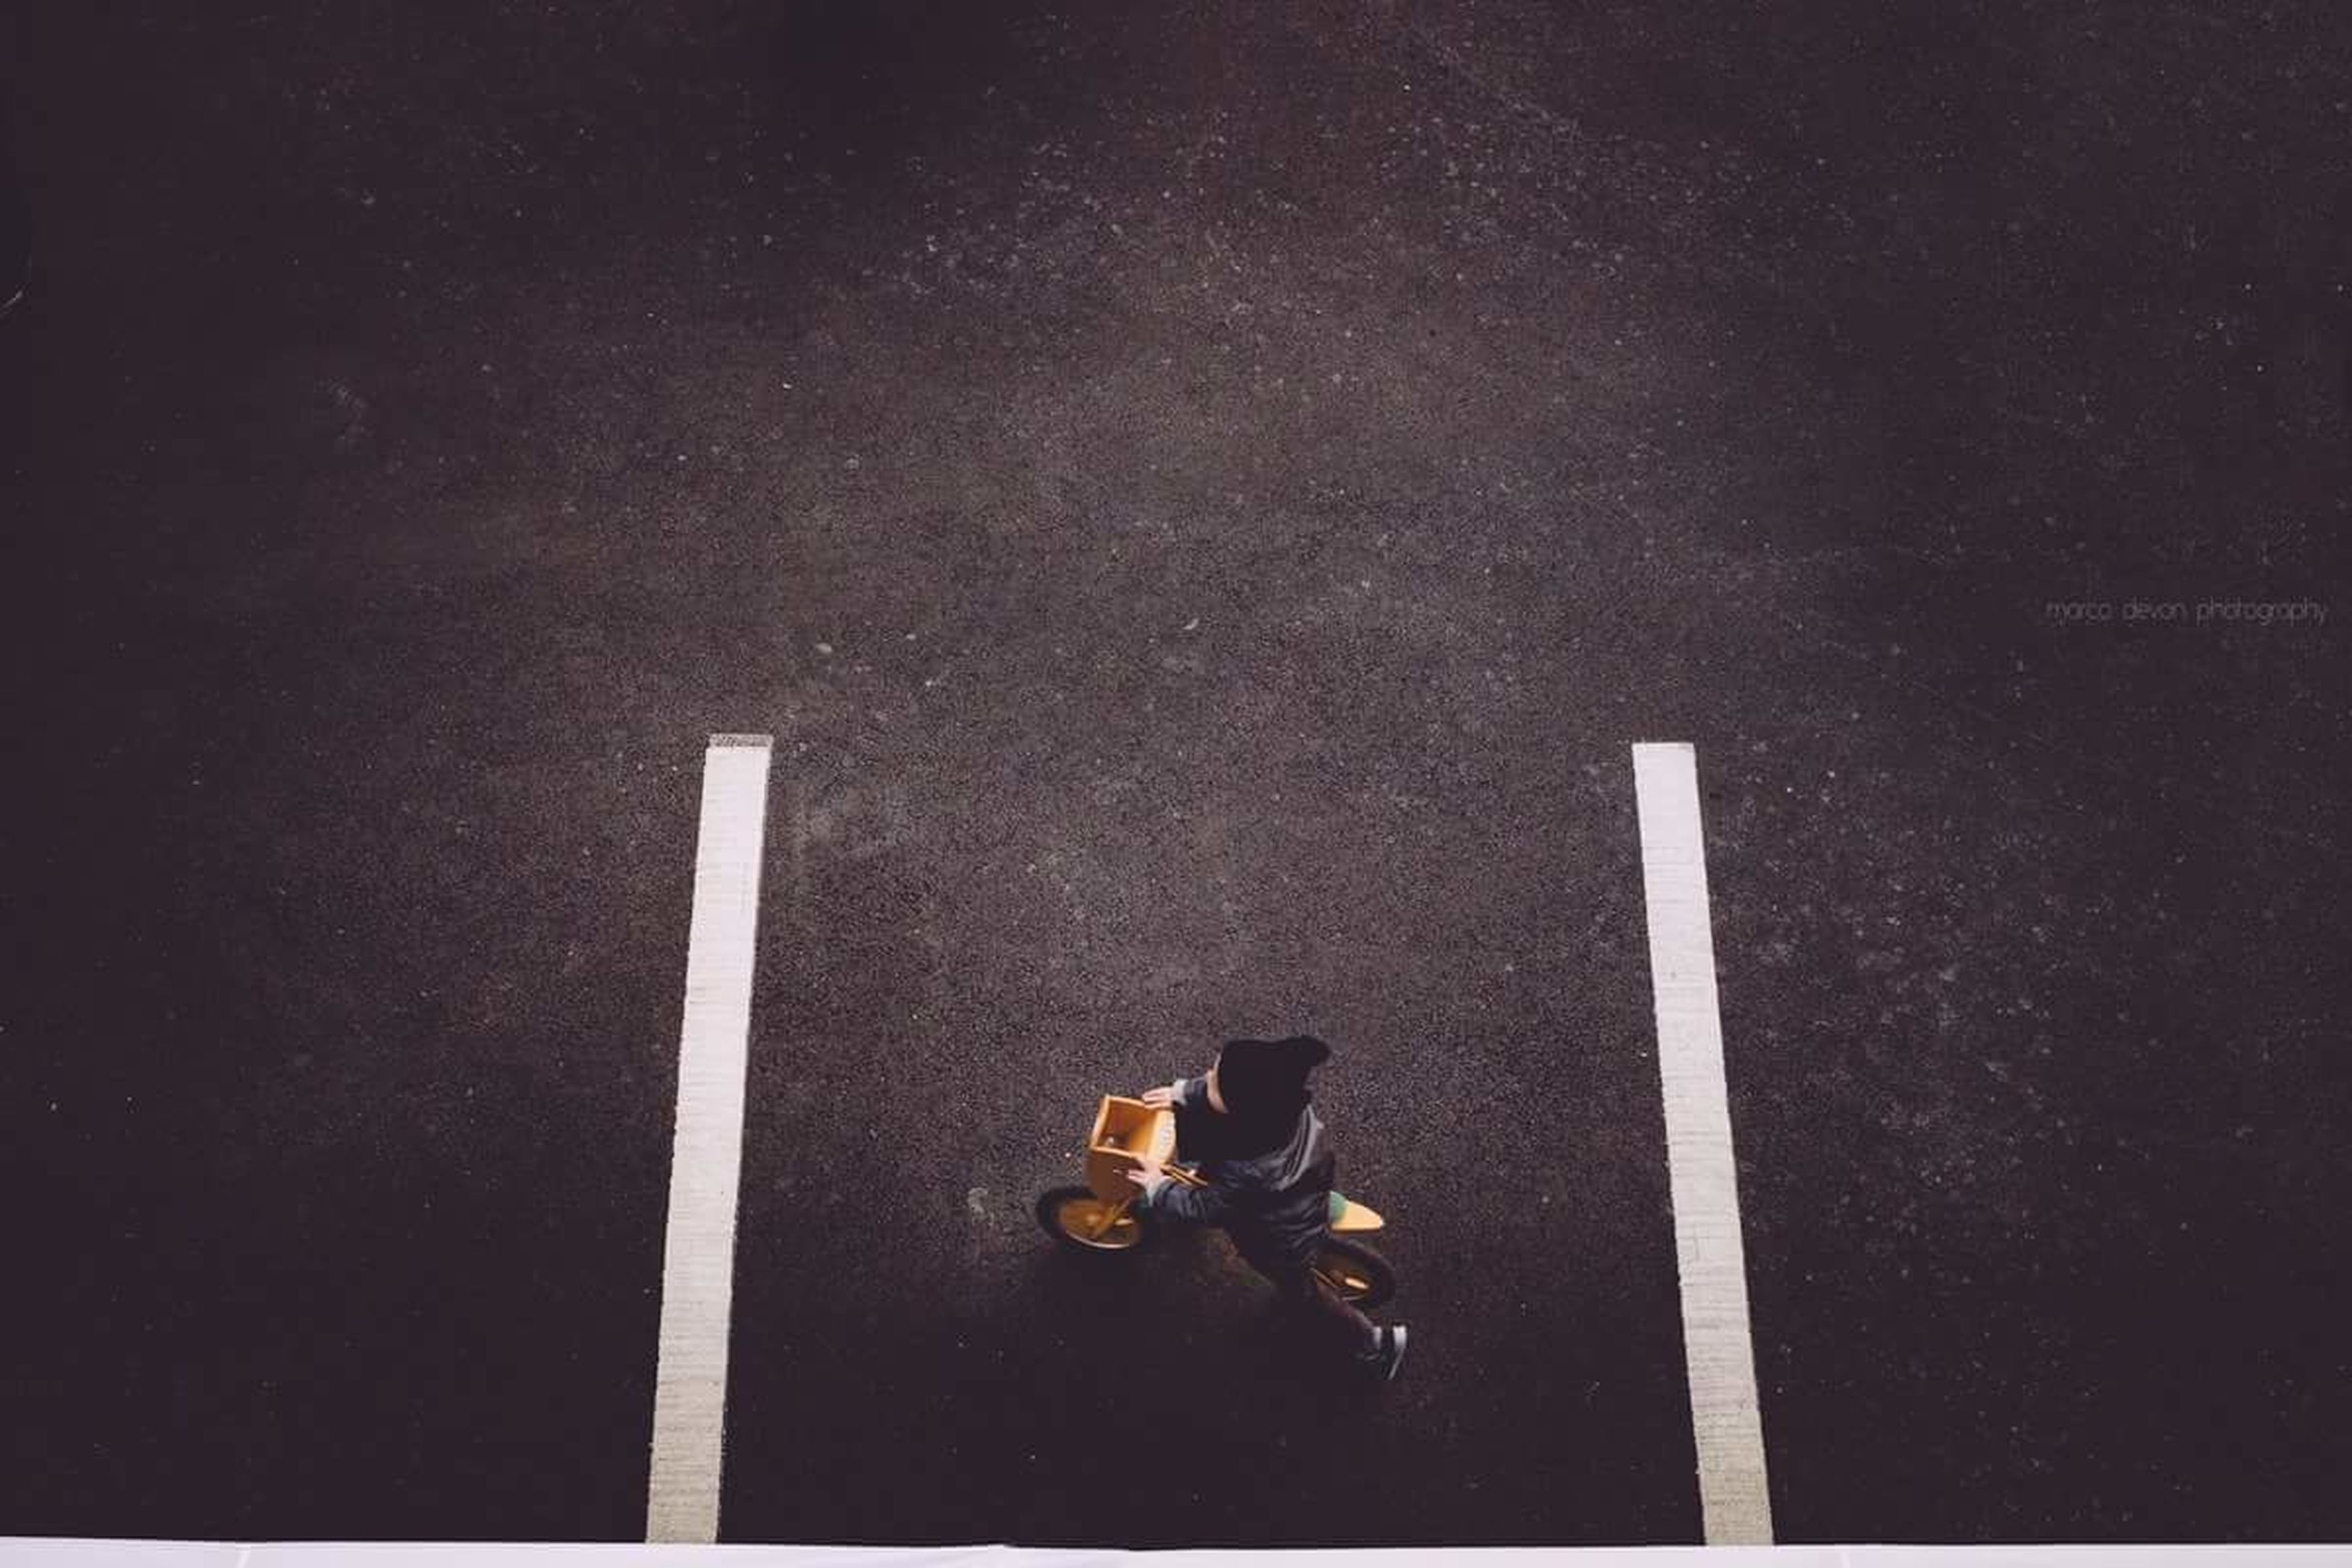 high angle view, street, road, transportation, asphalt, road marking, night, shoe, outdoors, men, shadow, standing, footwear, unrecognizable person, auto post production filter, copy space, directly above